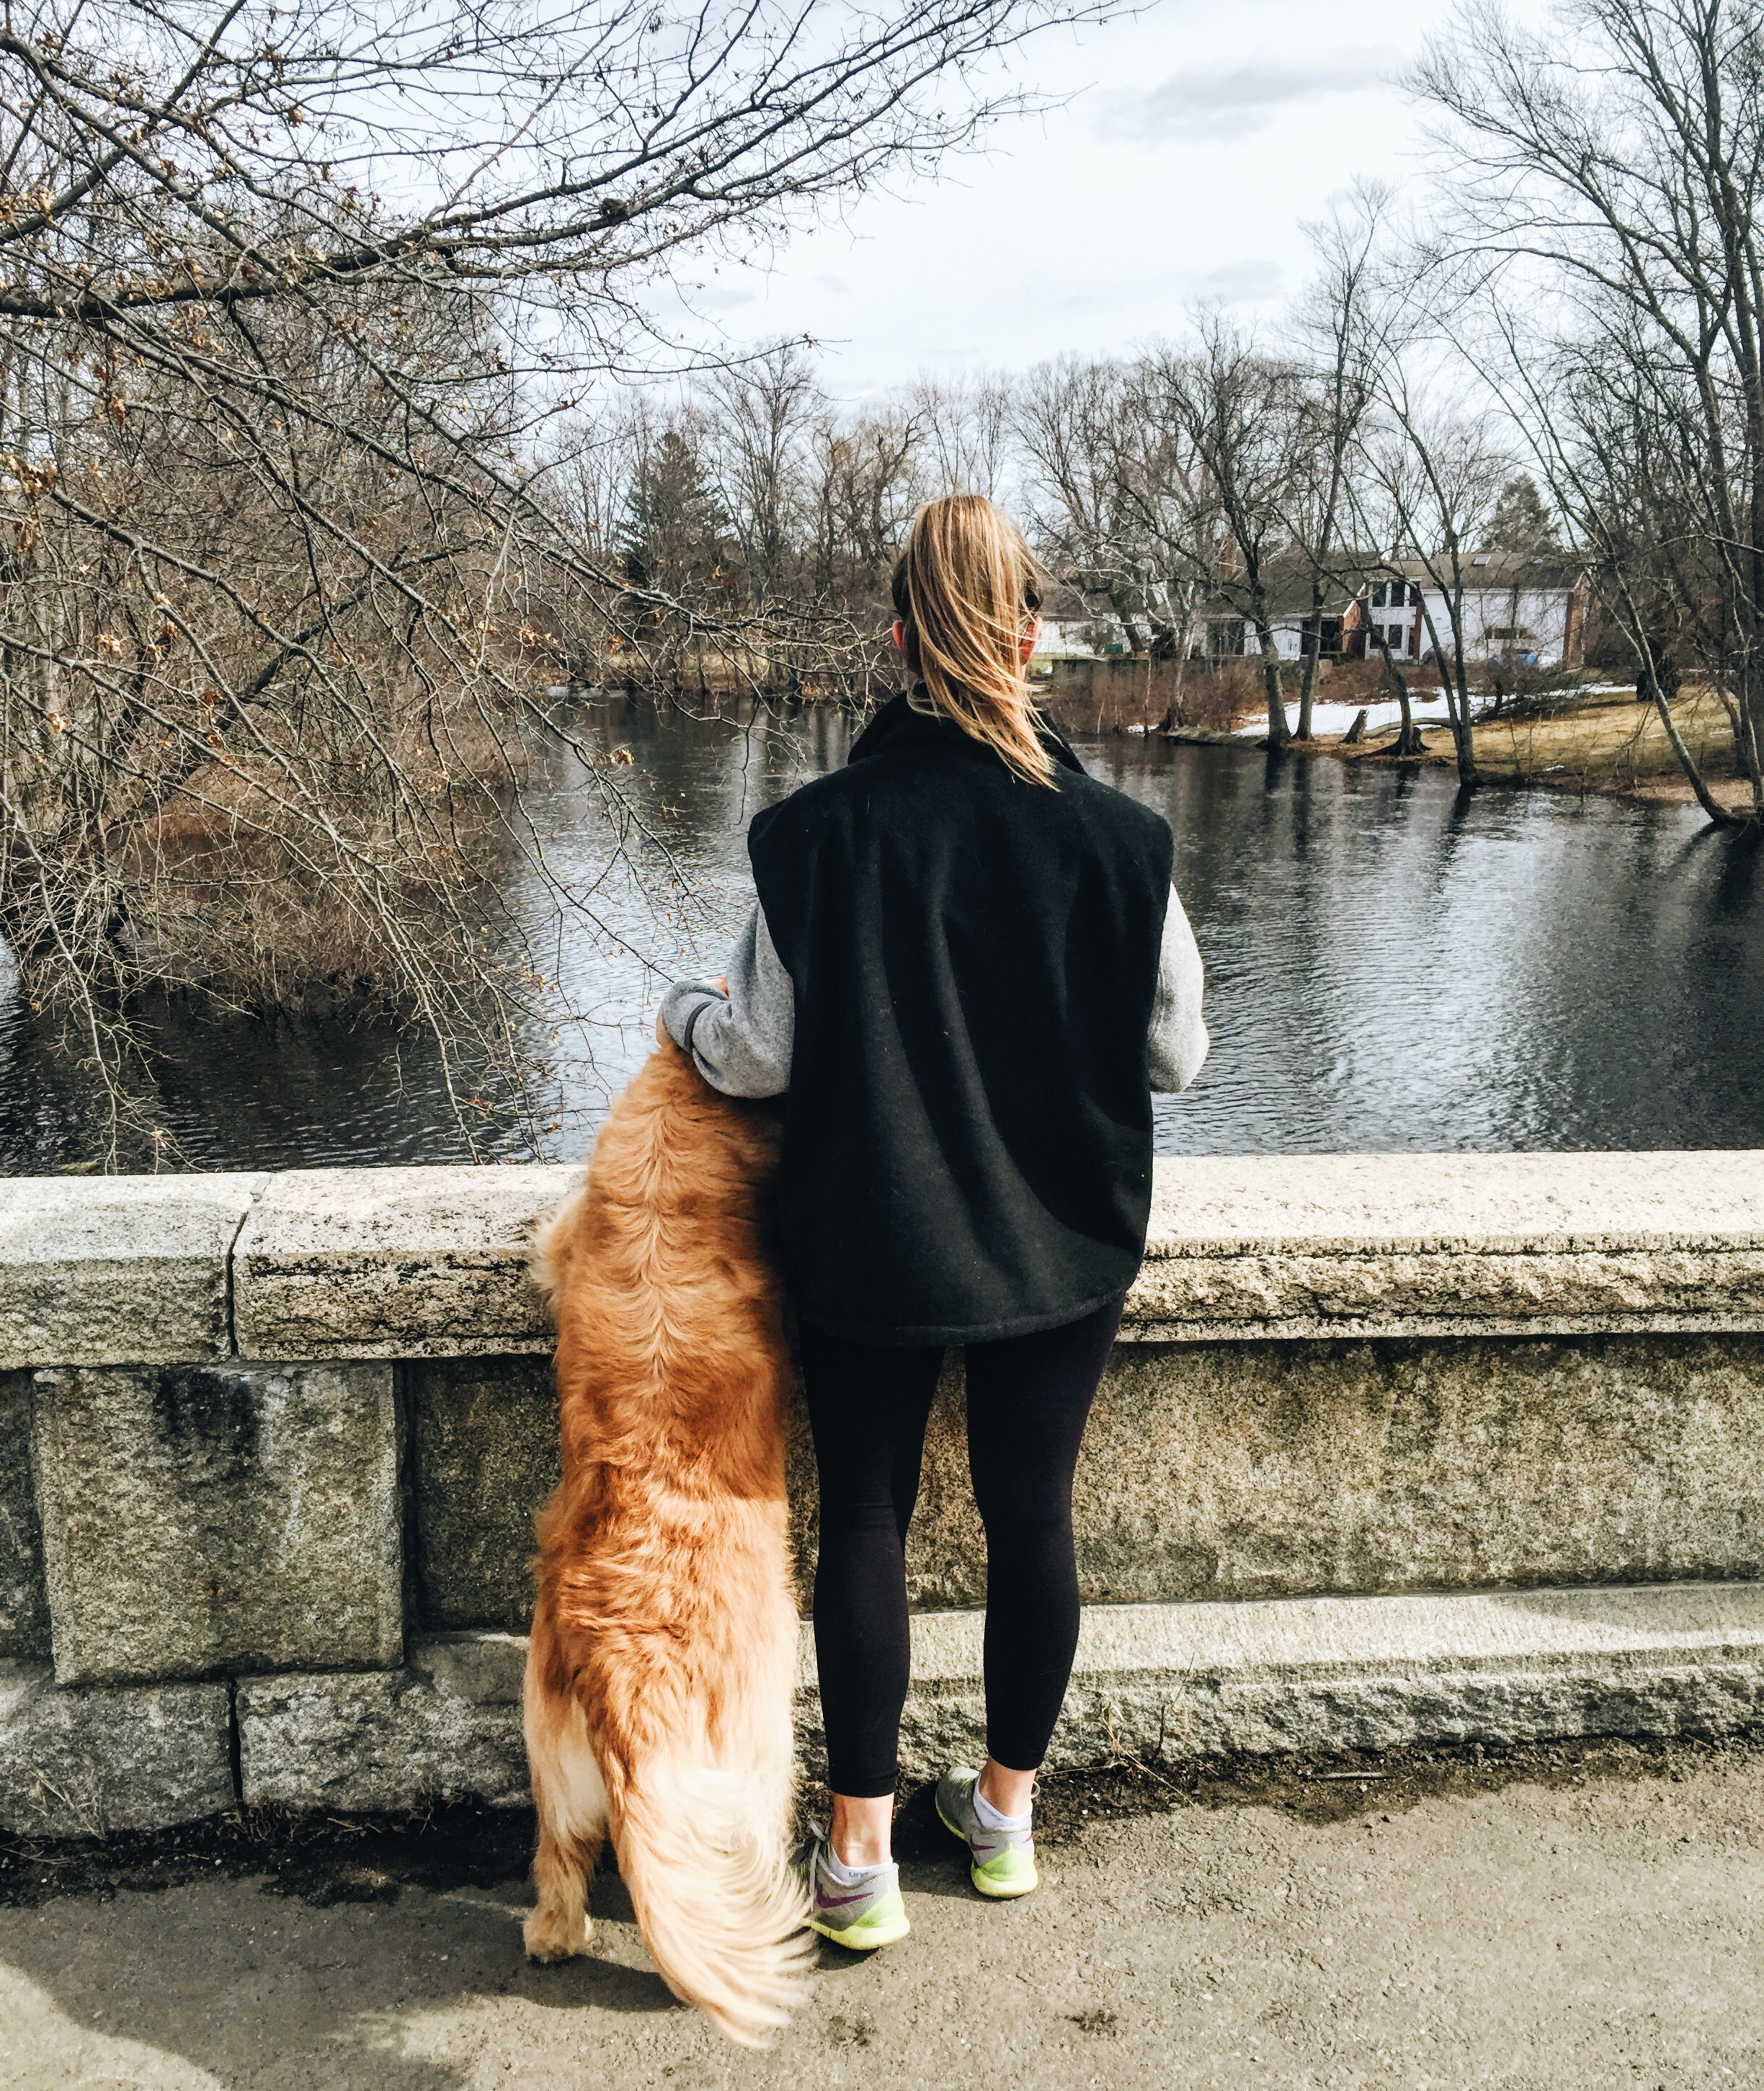 {Two tails on a great walk last weekend. It's starting to feel like spring!}